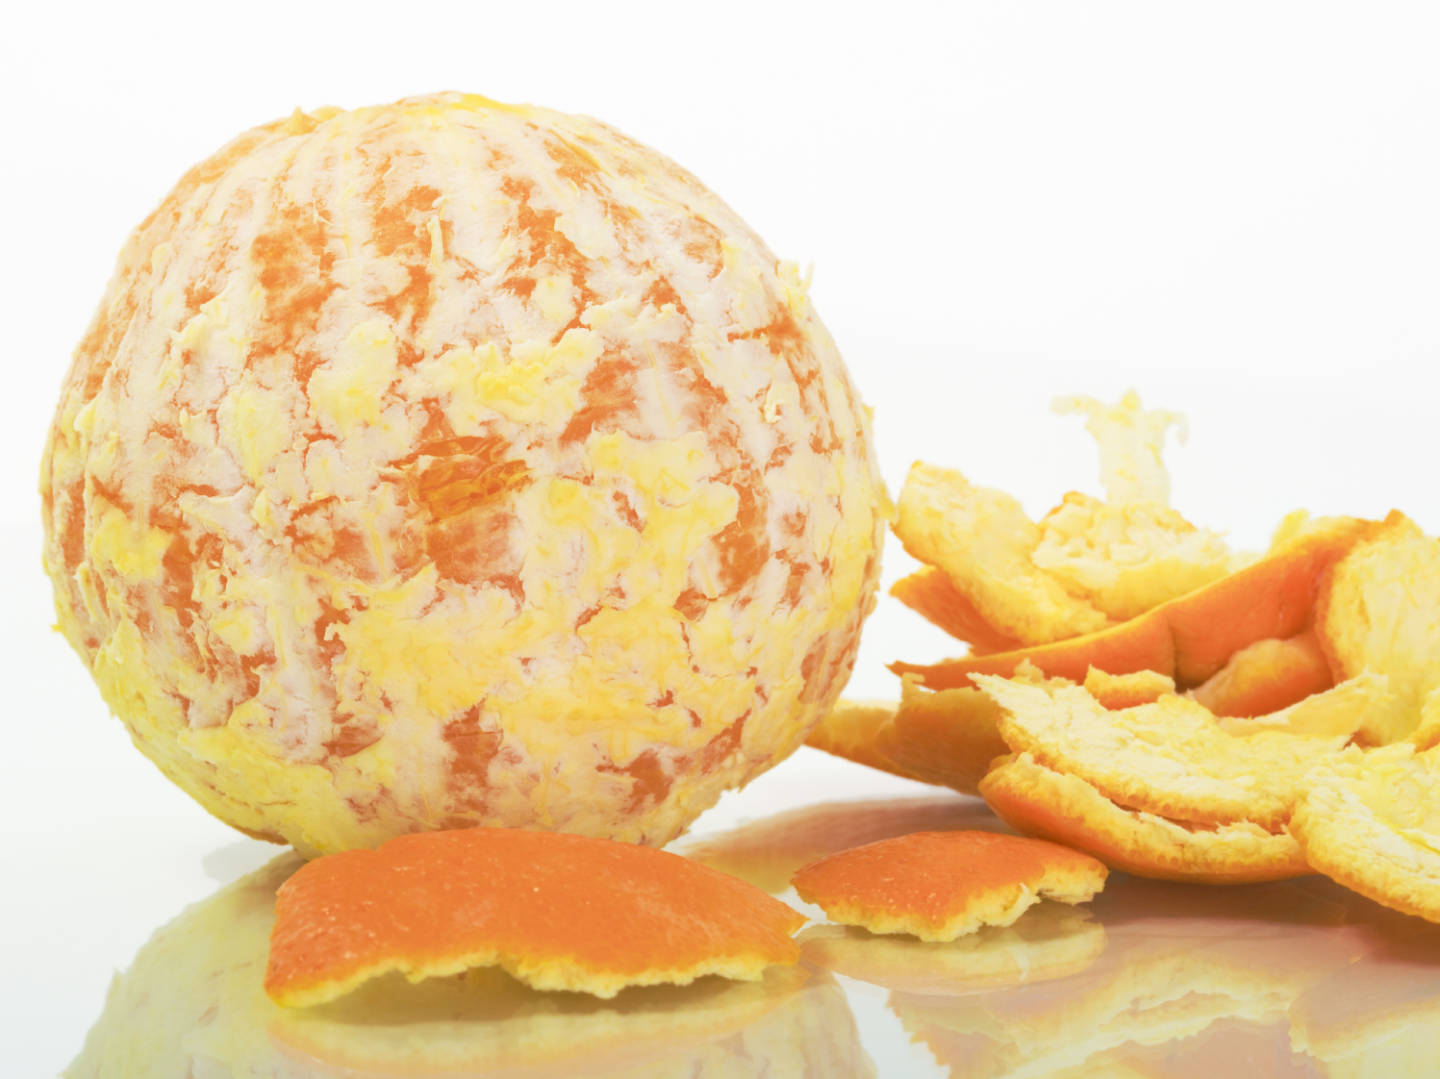 Pre-Peeled Oranges: What Some Call 'Lazy' Others Call A 'Lifesaver'